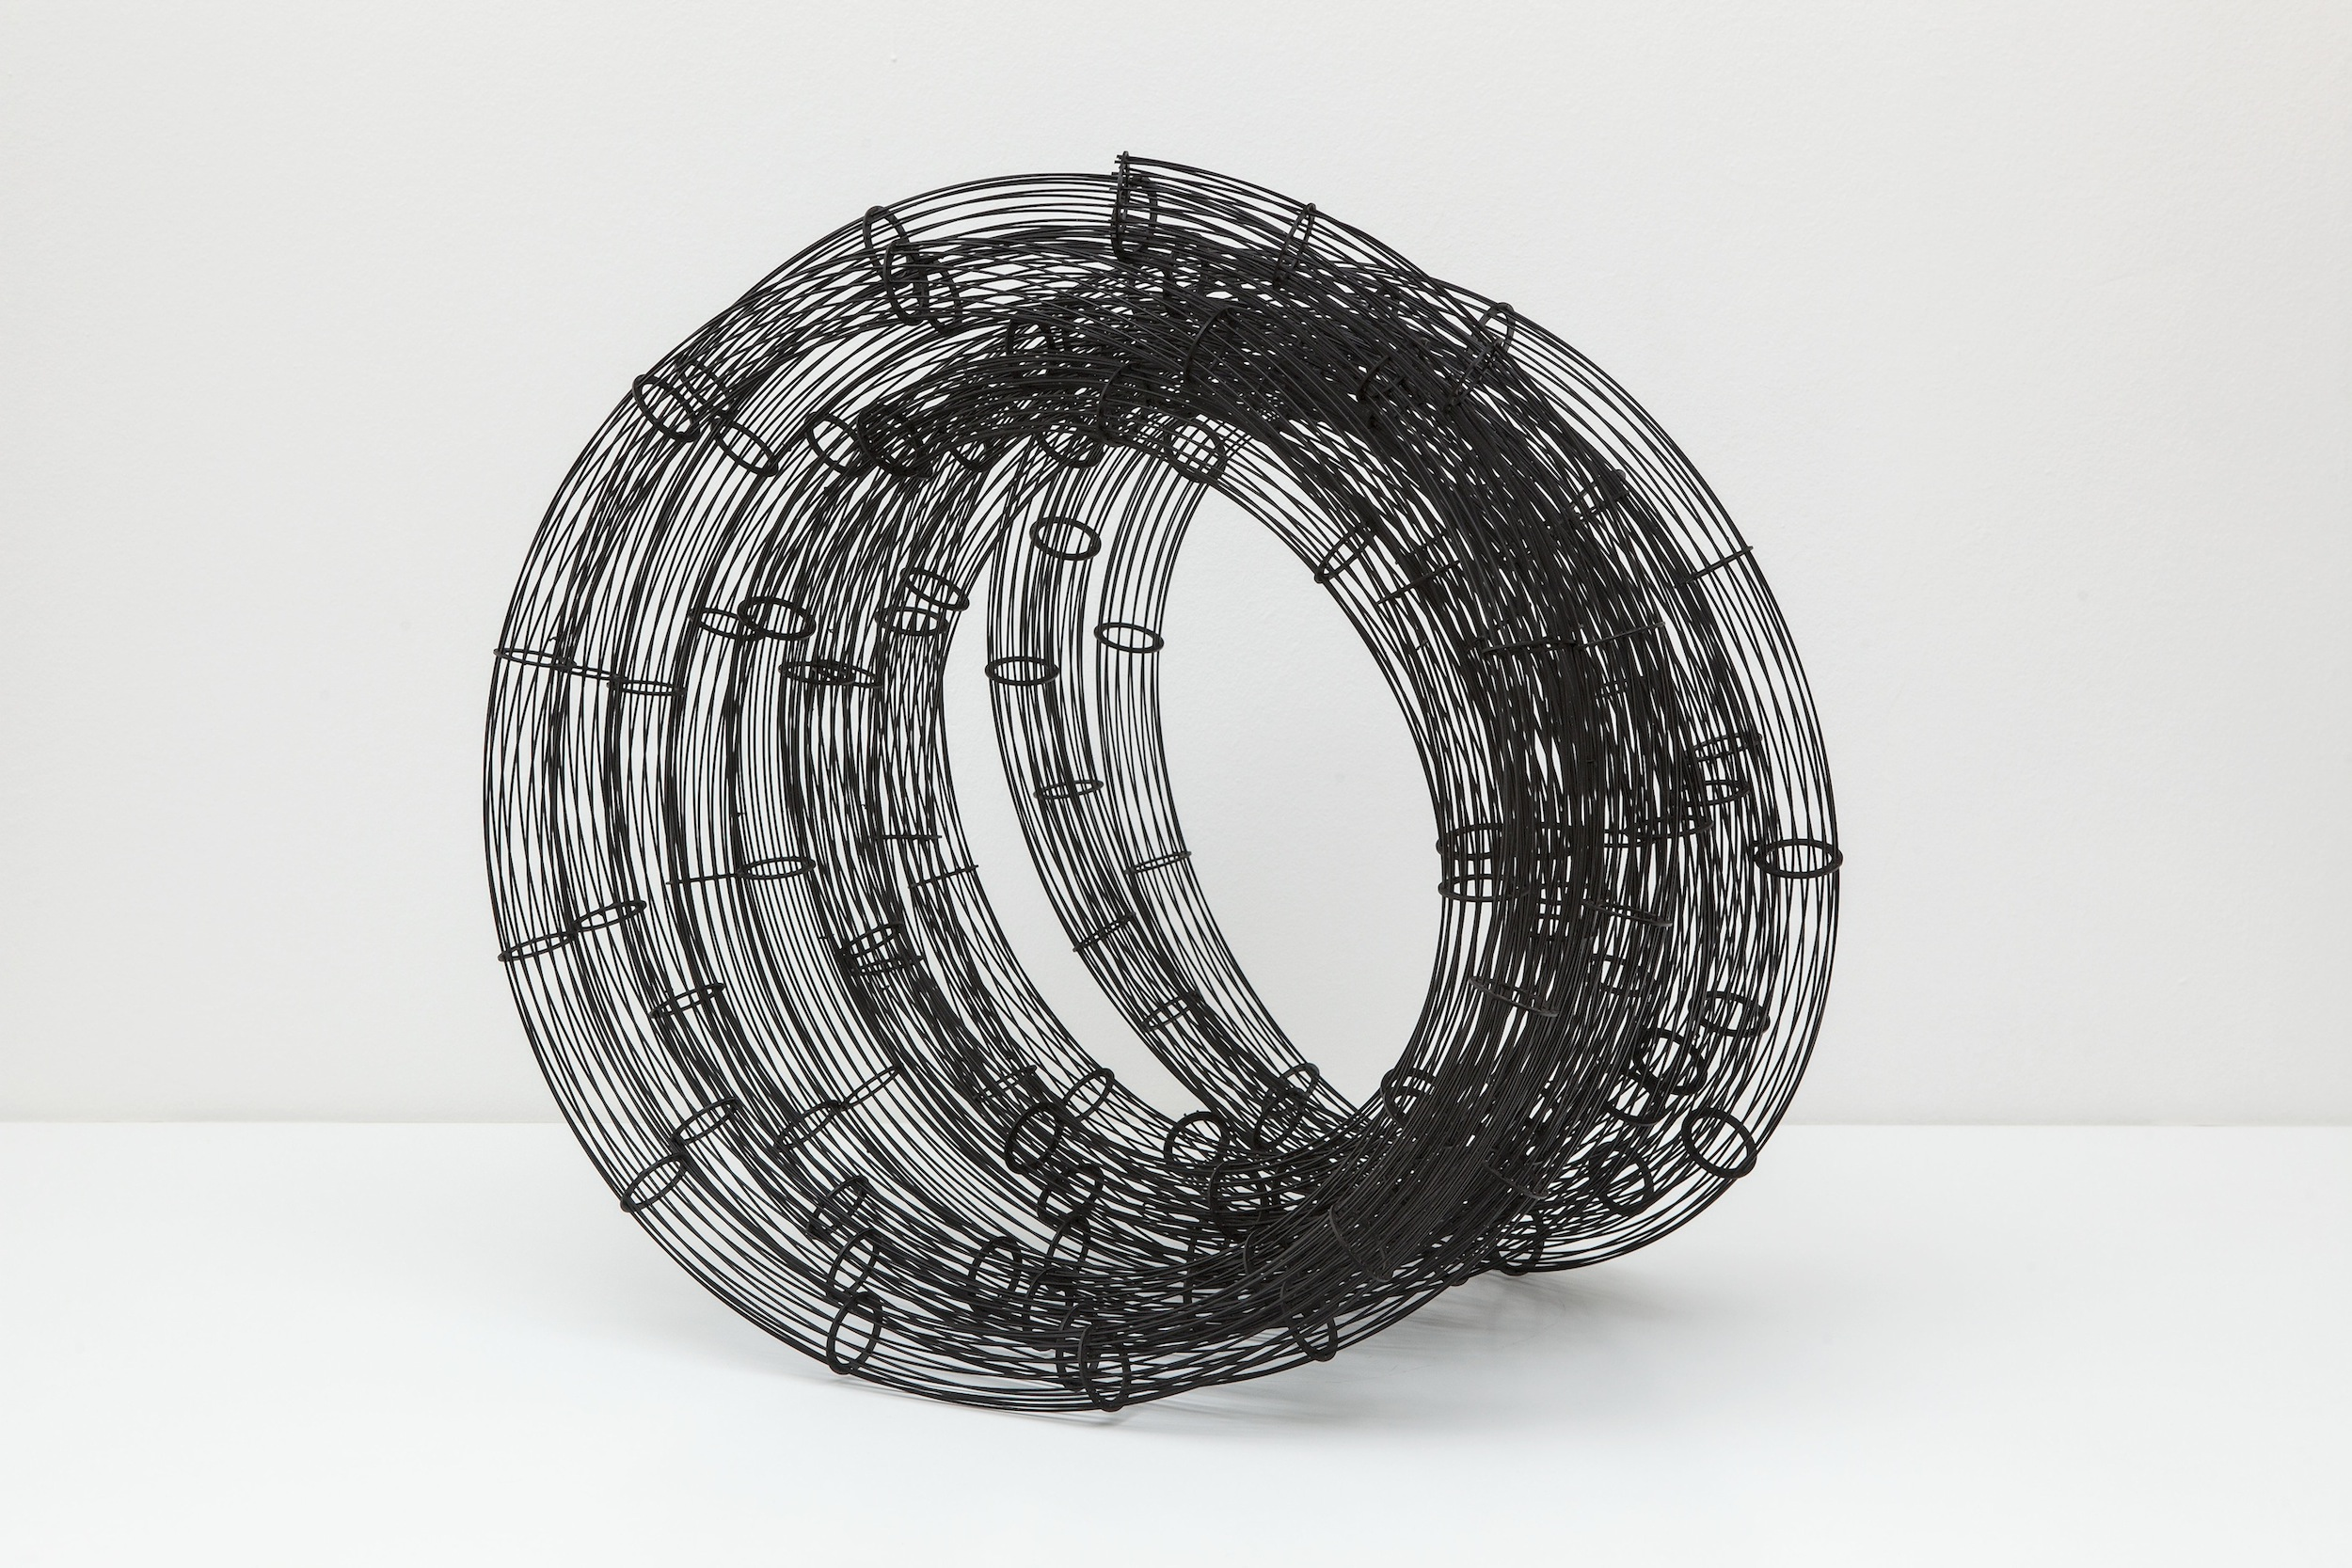 Untitled (Winding)    Soldered Steel and Enamel Paint  75 x 80 x 60 cm